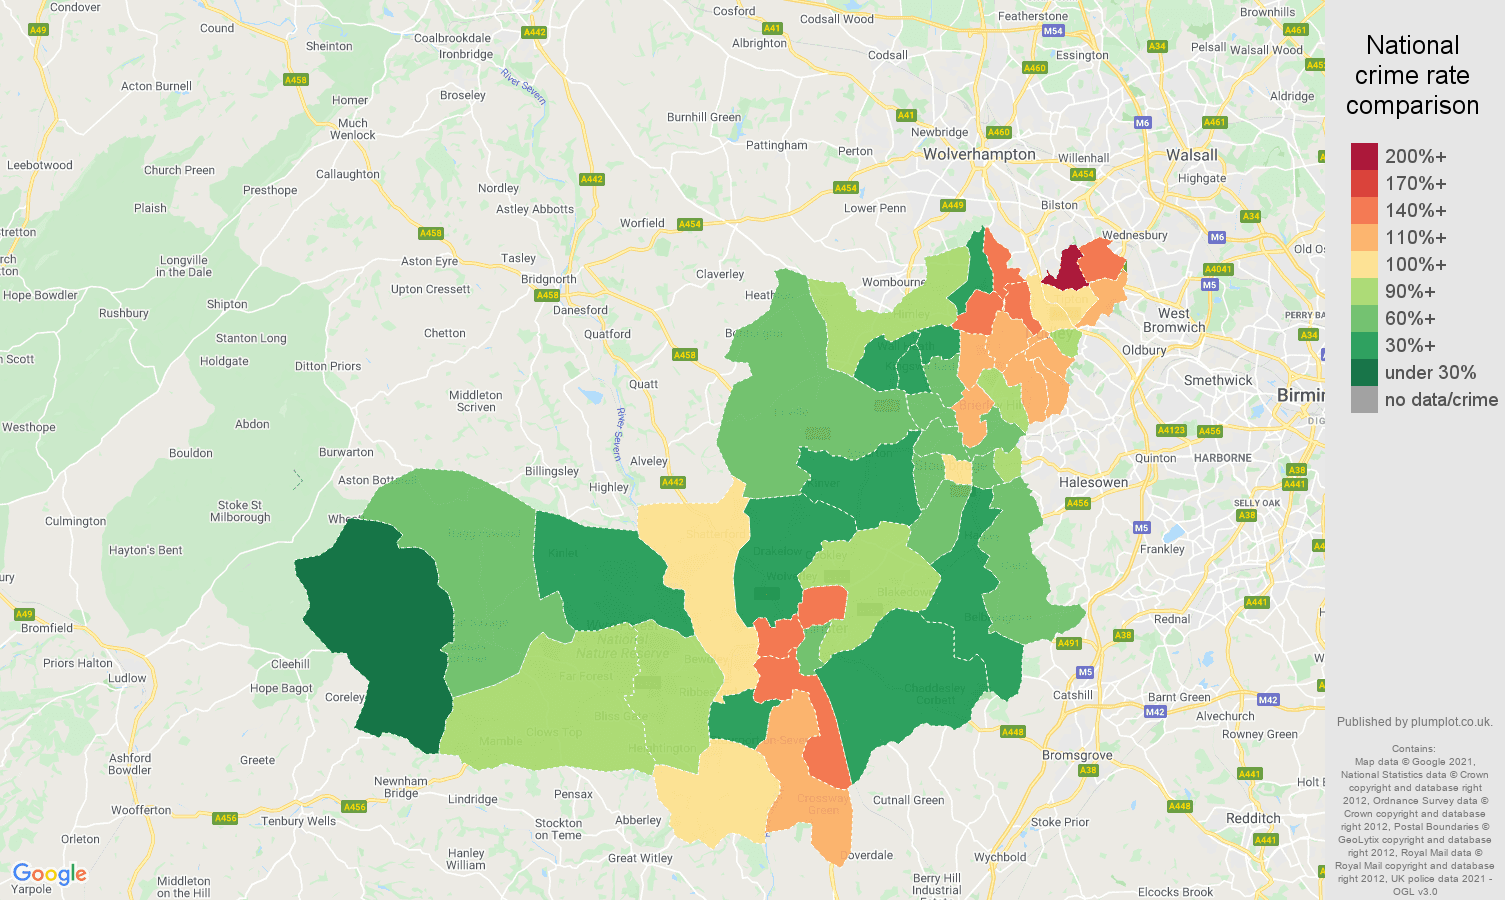 Dudley criminal damage and arson crime rate comparison map